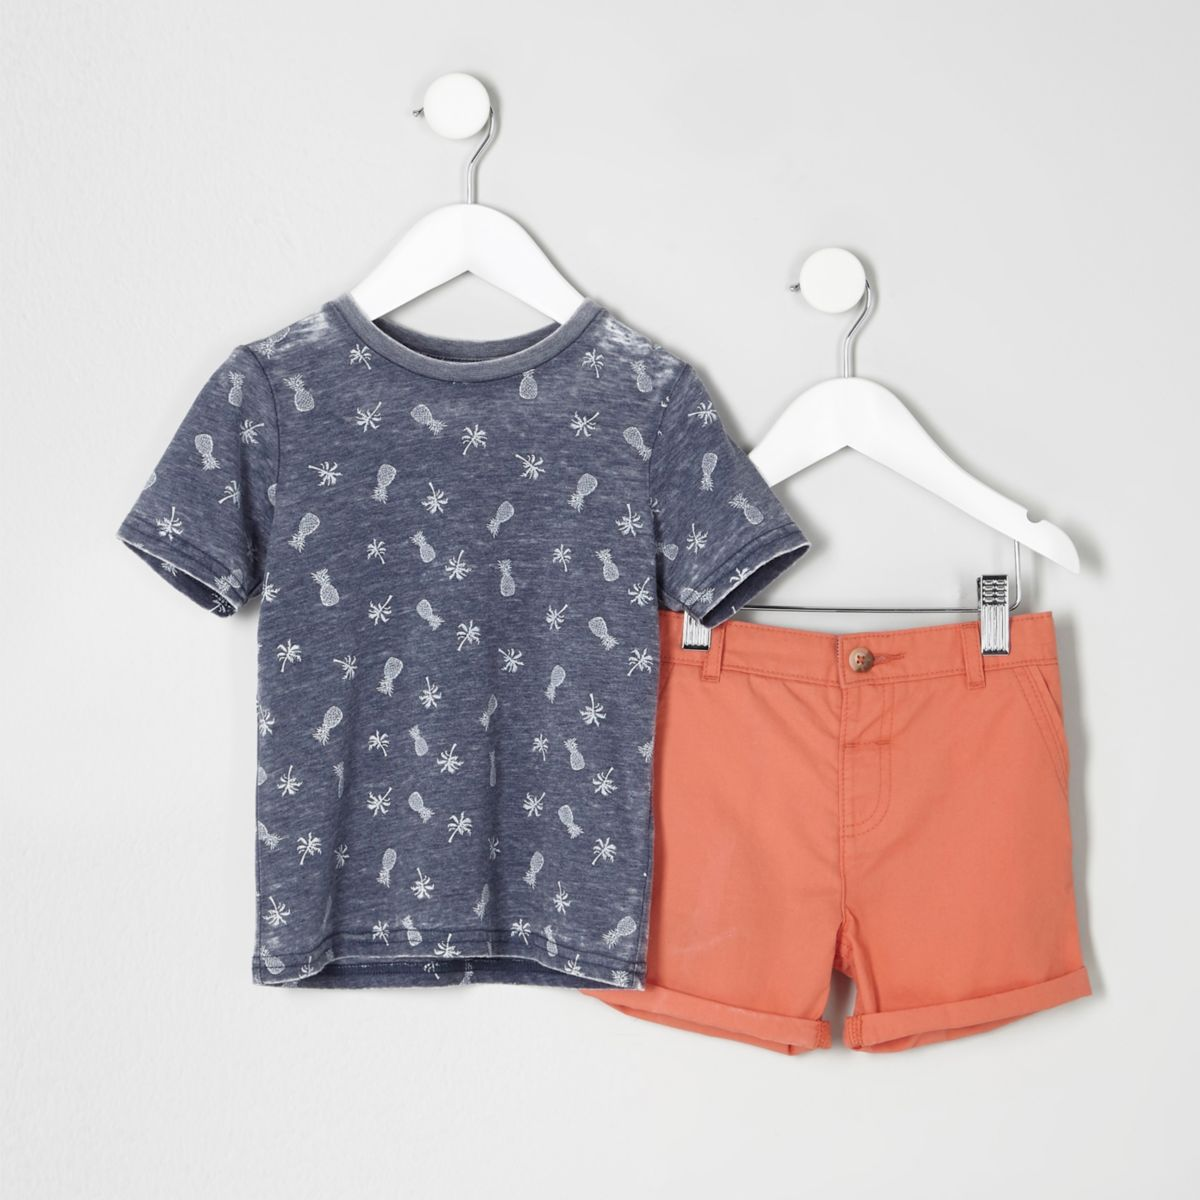 Shop eBay for great deals on Boys' Tops & T-Shirts (Newborn-5T). You'll find new or used products in Boys' Tops & T-Shirts (Newborn-5T) on eBay. Free shipping on selected items.